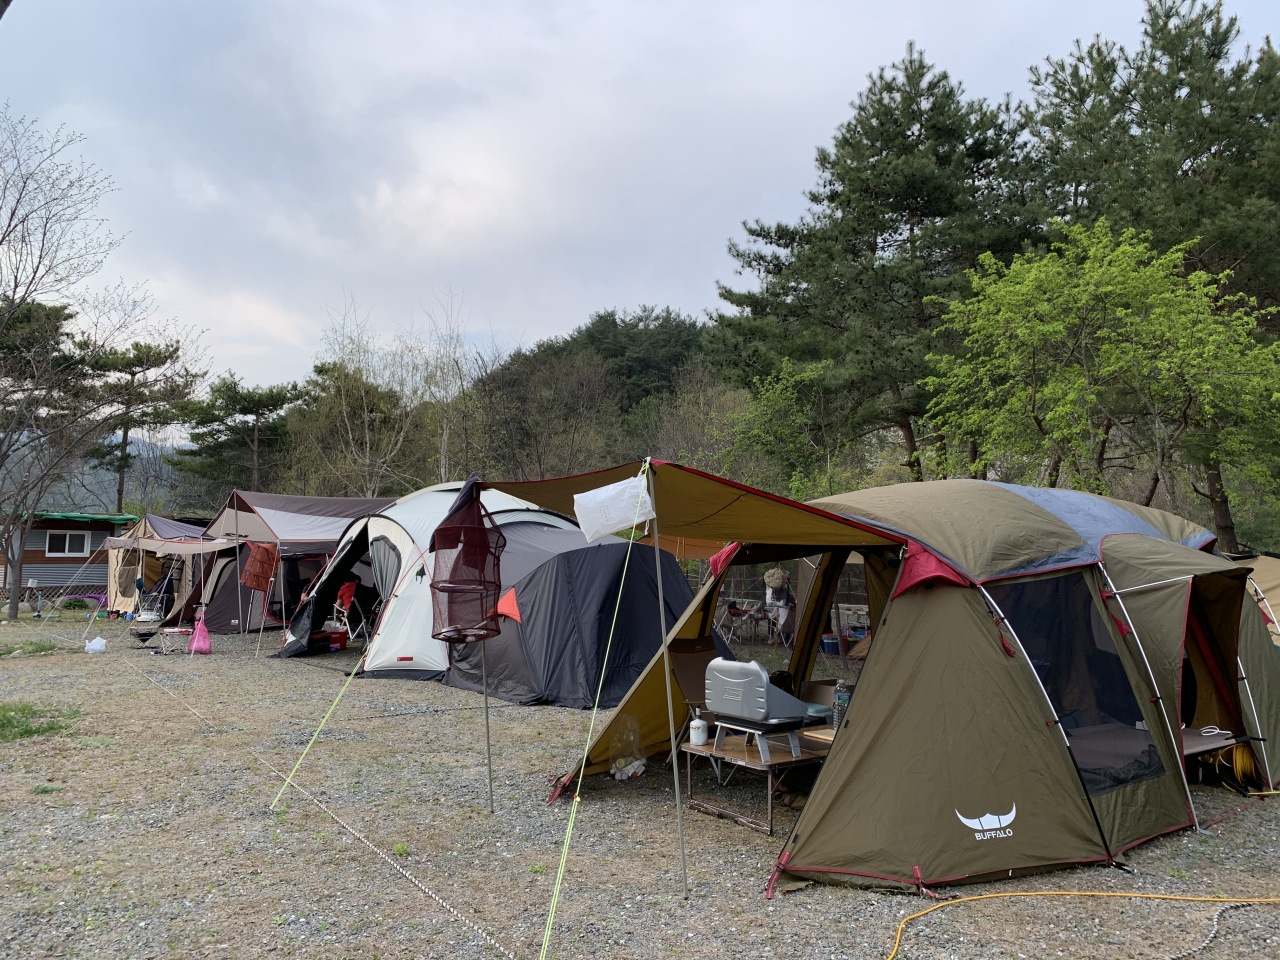 Tents are set up shoulder to shoulder at a camping site in Hongcheon, Gangwon Province, April 30. (The Korea Herald)